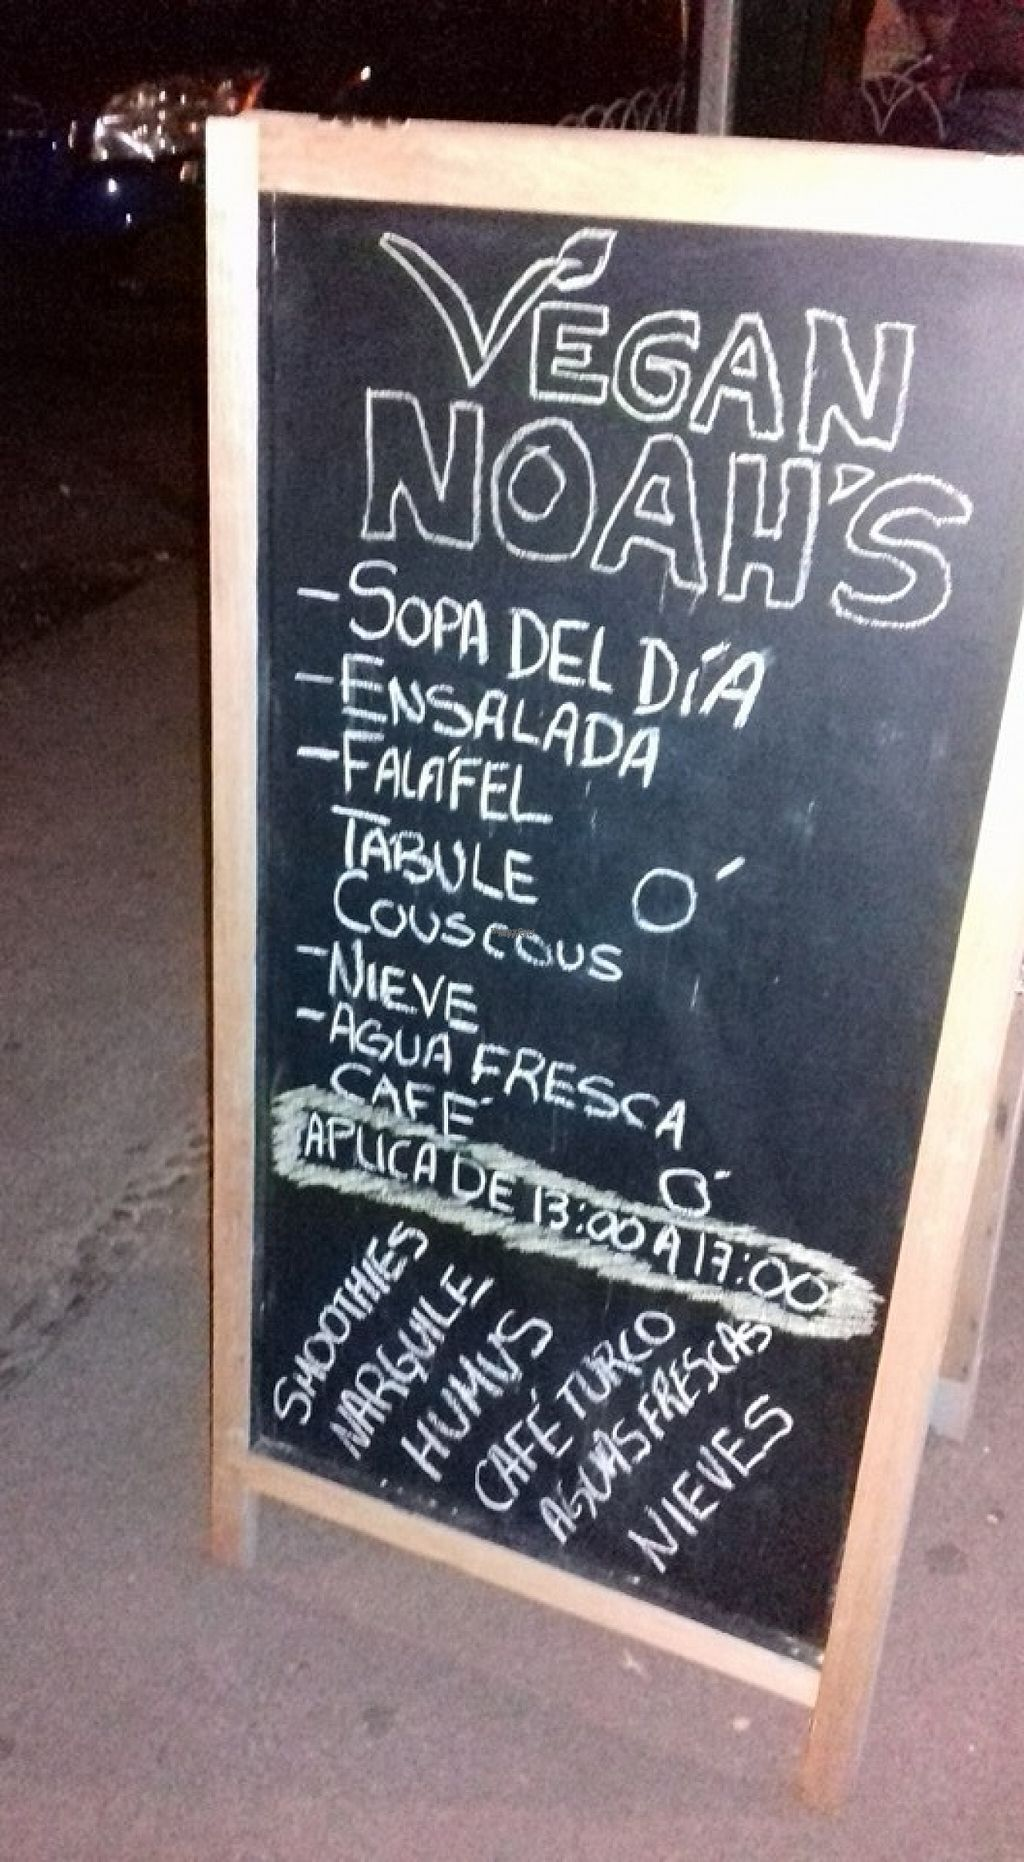 "Photo of CLOSED: Noah's Falafel House  by <a href=""/members/profile/Liz%20Vegan%20Grrrl"">Liz Vegan Grrrl</a> <br/>sign outside <br/> August 10, 2016  - <a href='/contact/abuse/image/78466/167545'>Report</a>"